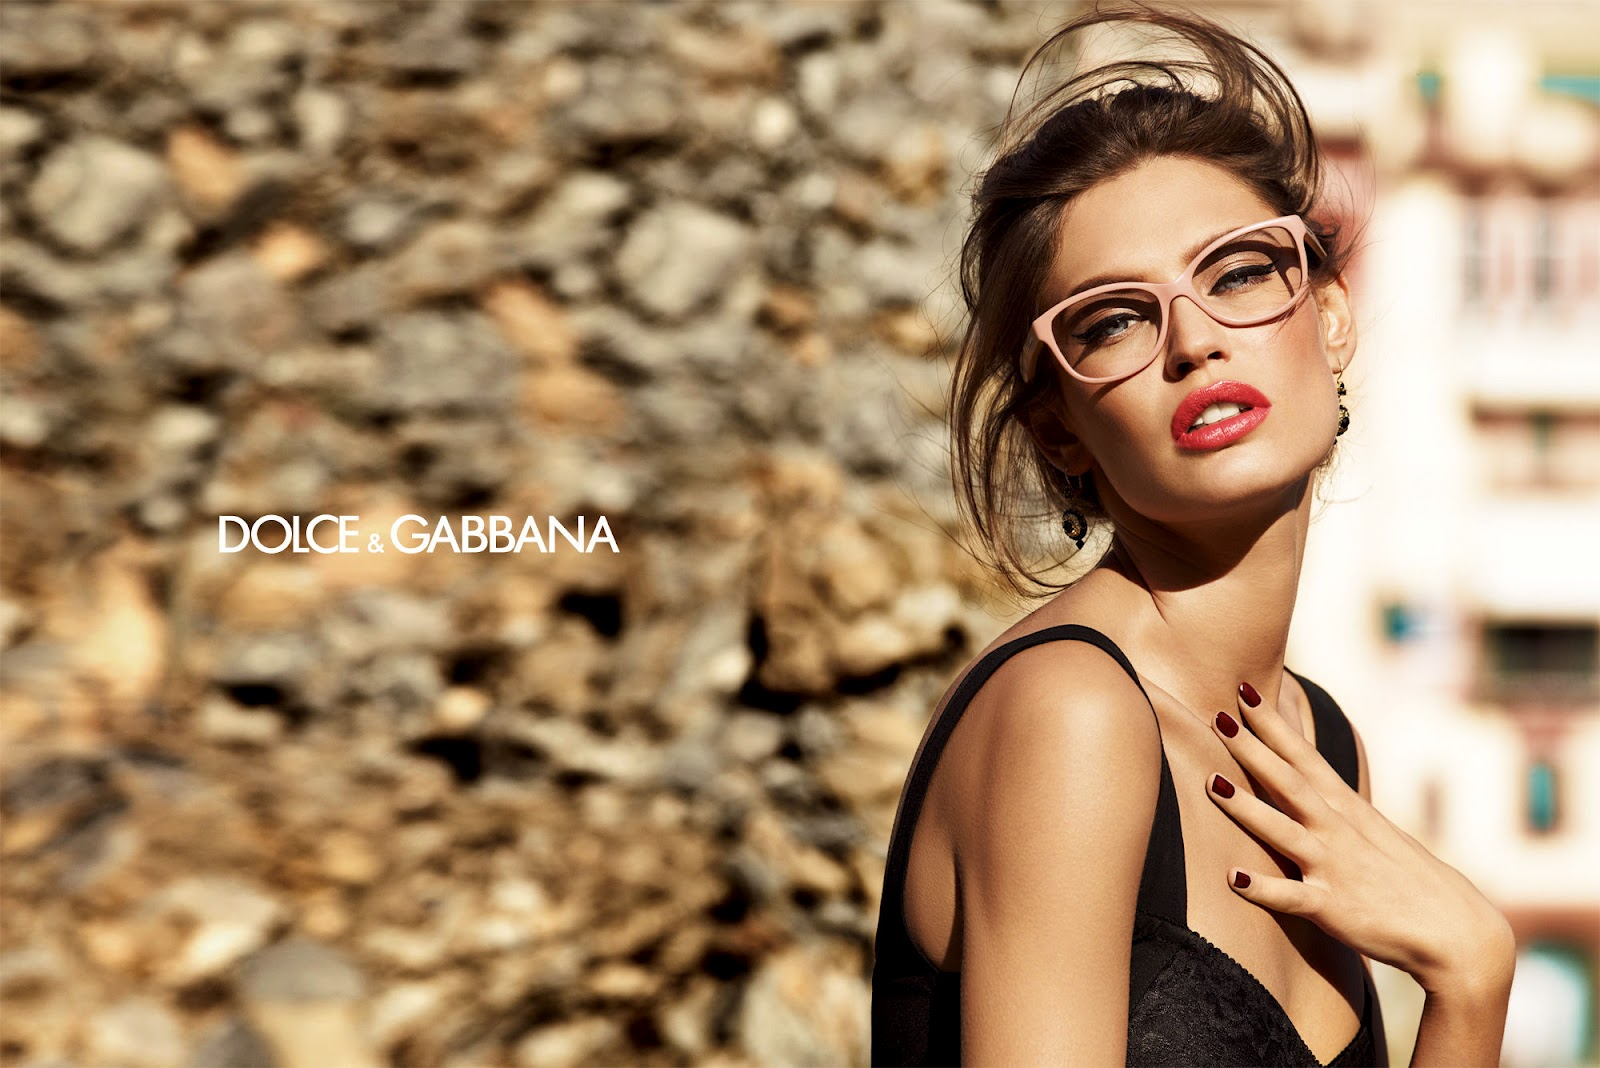 fbe52e6ceba1 Bianca Balti for Dolce   Gabbana Eyewear  Video